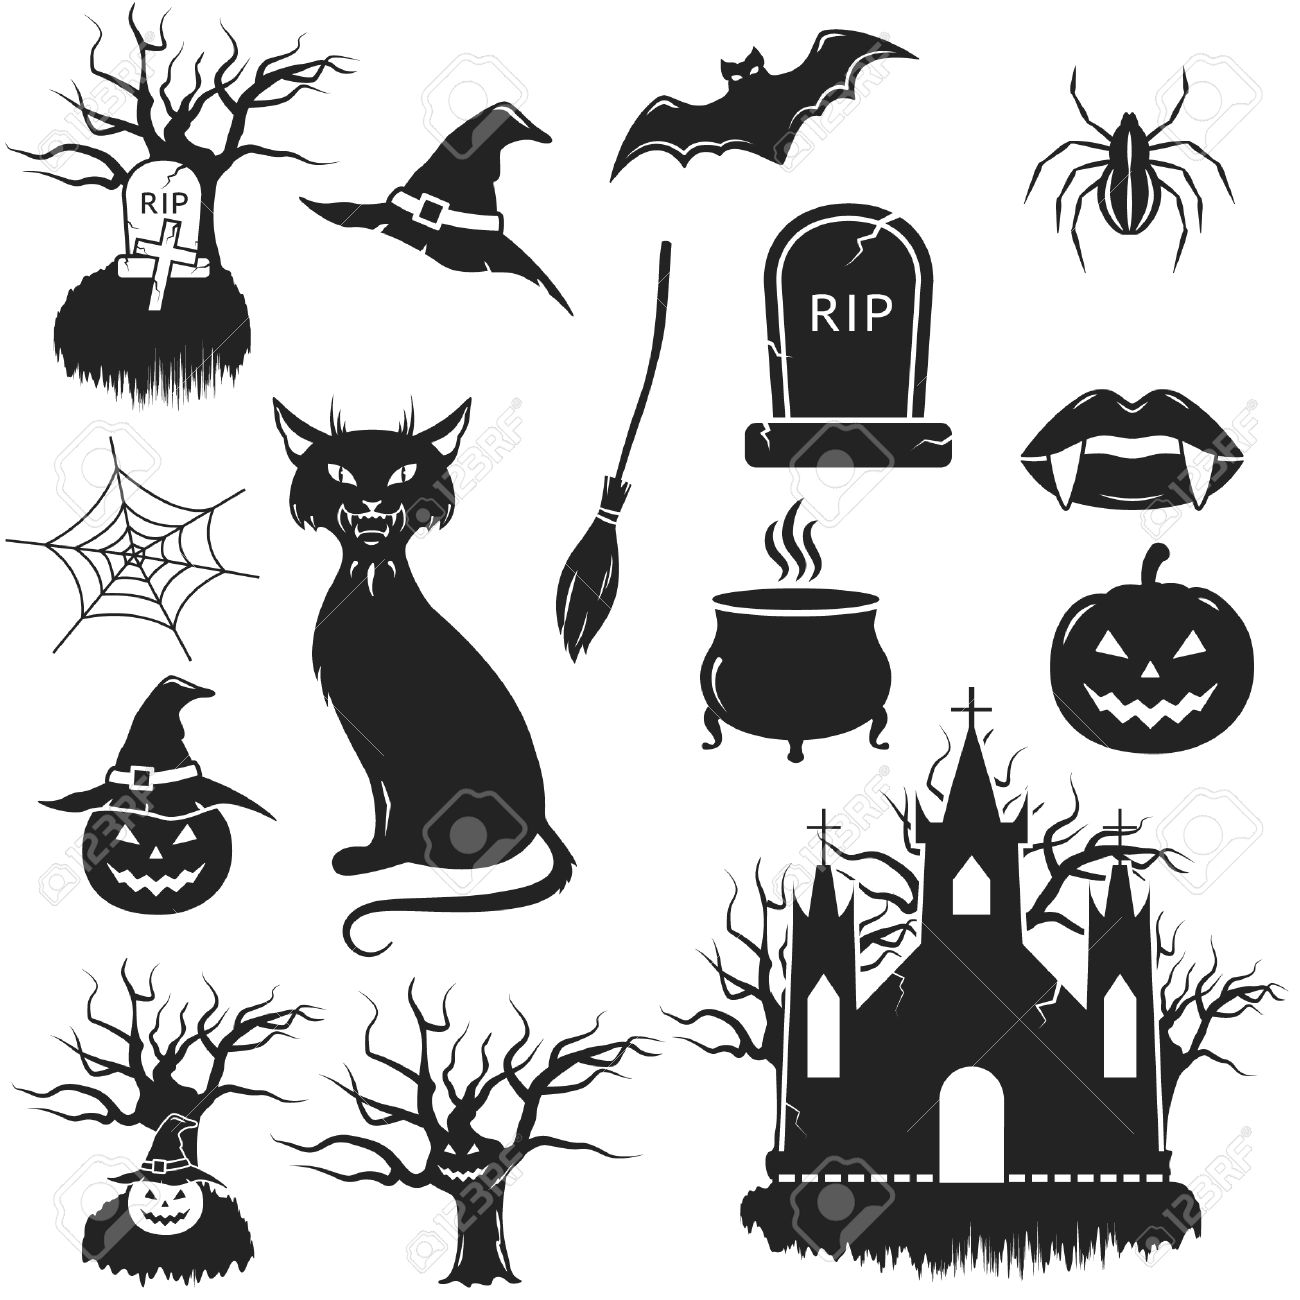 13786 tombstone stock vector illustration and royalty free halloween black and white icons set vector illustration voltagebd Choice Image